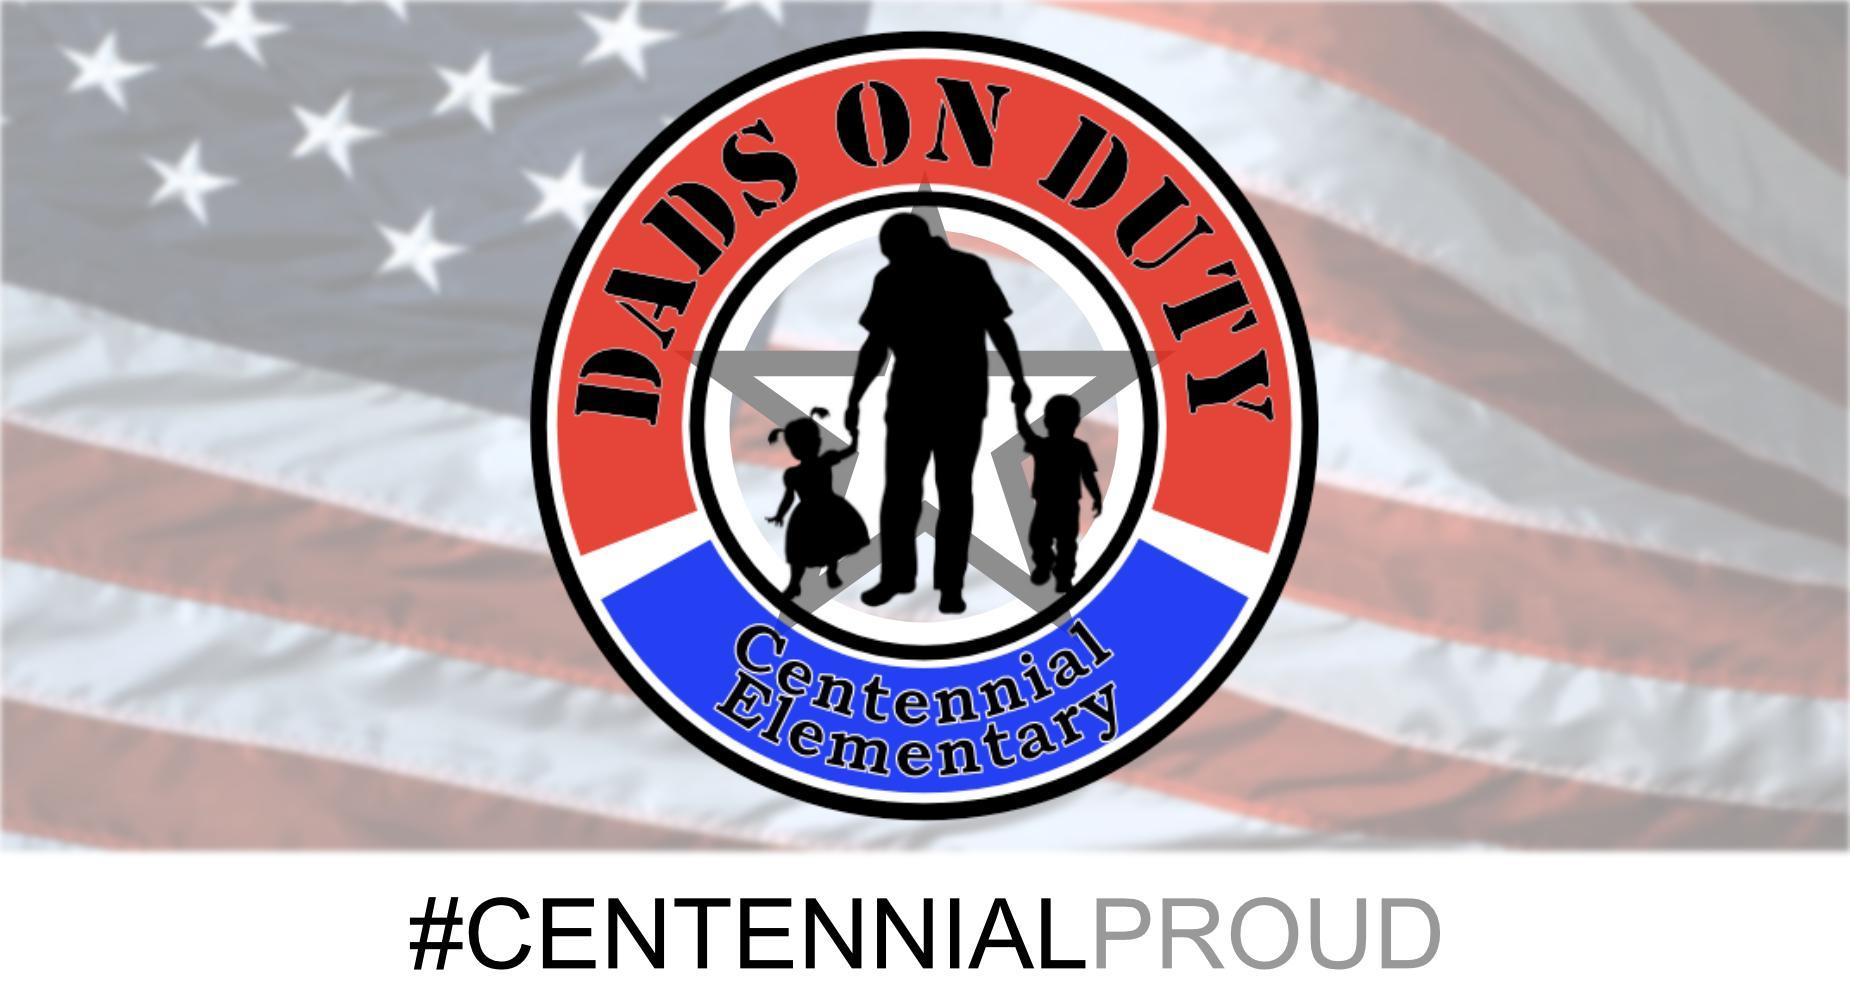 Dads on Duty Logo